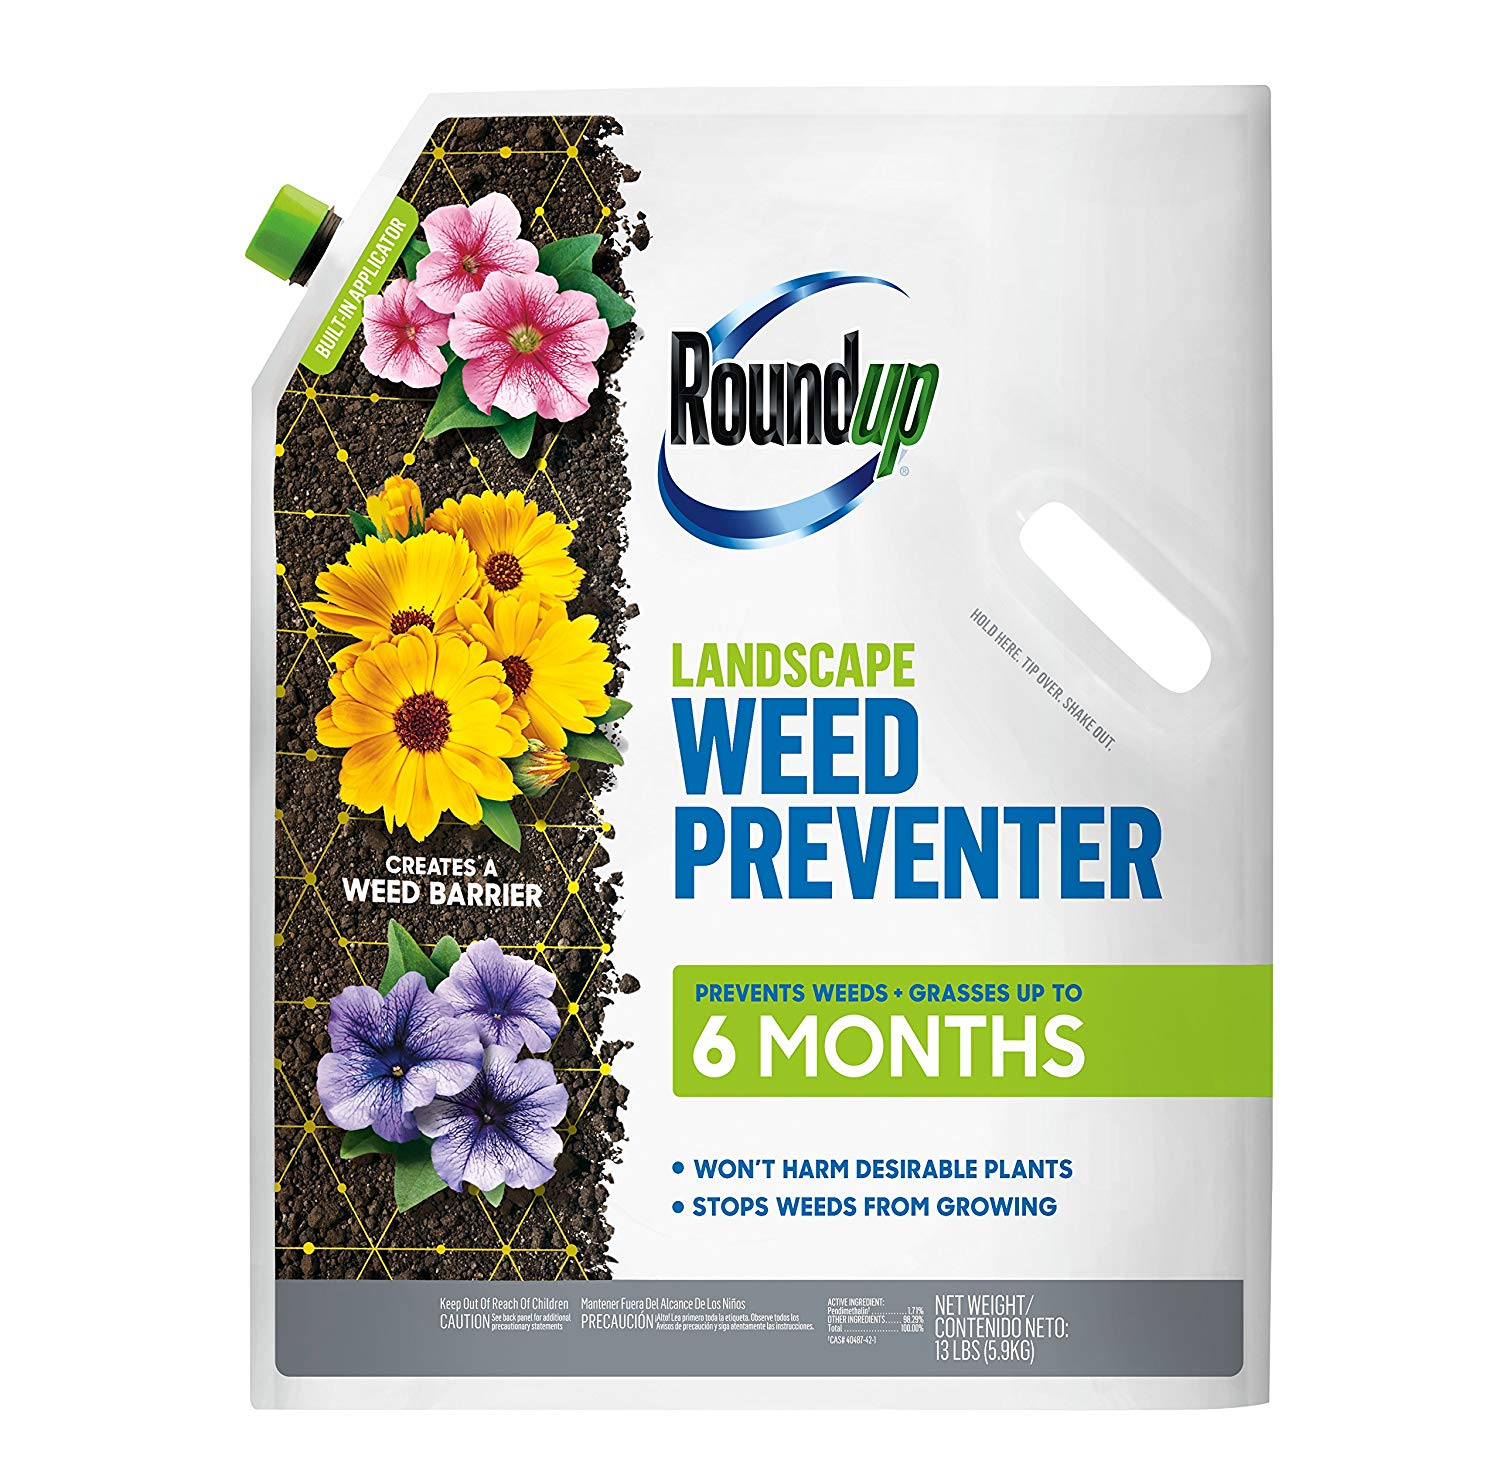 Roundup Weed Preventor